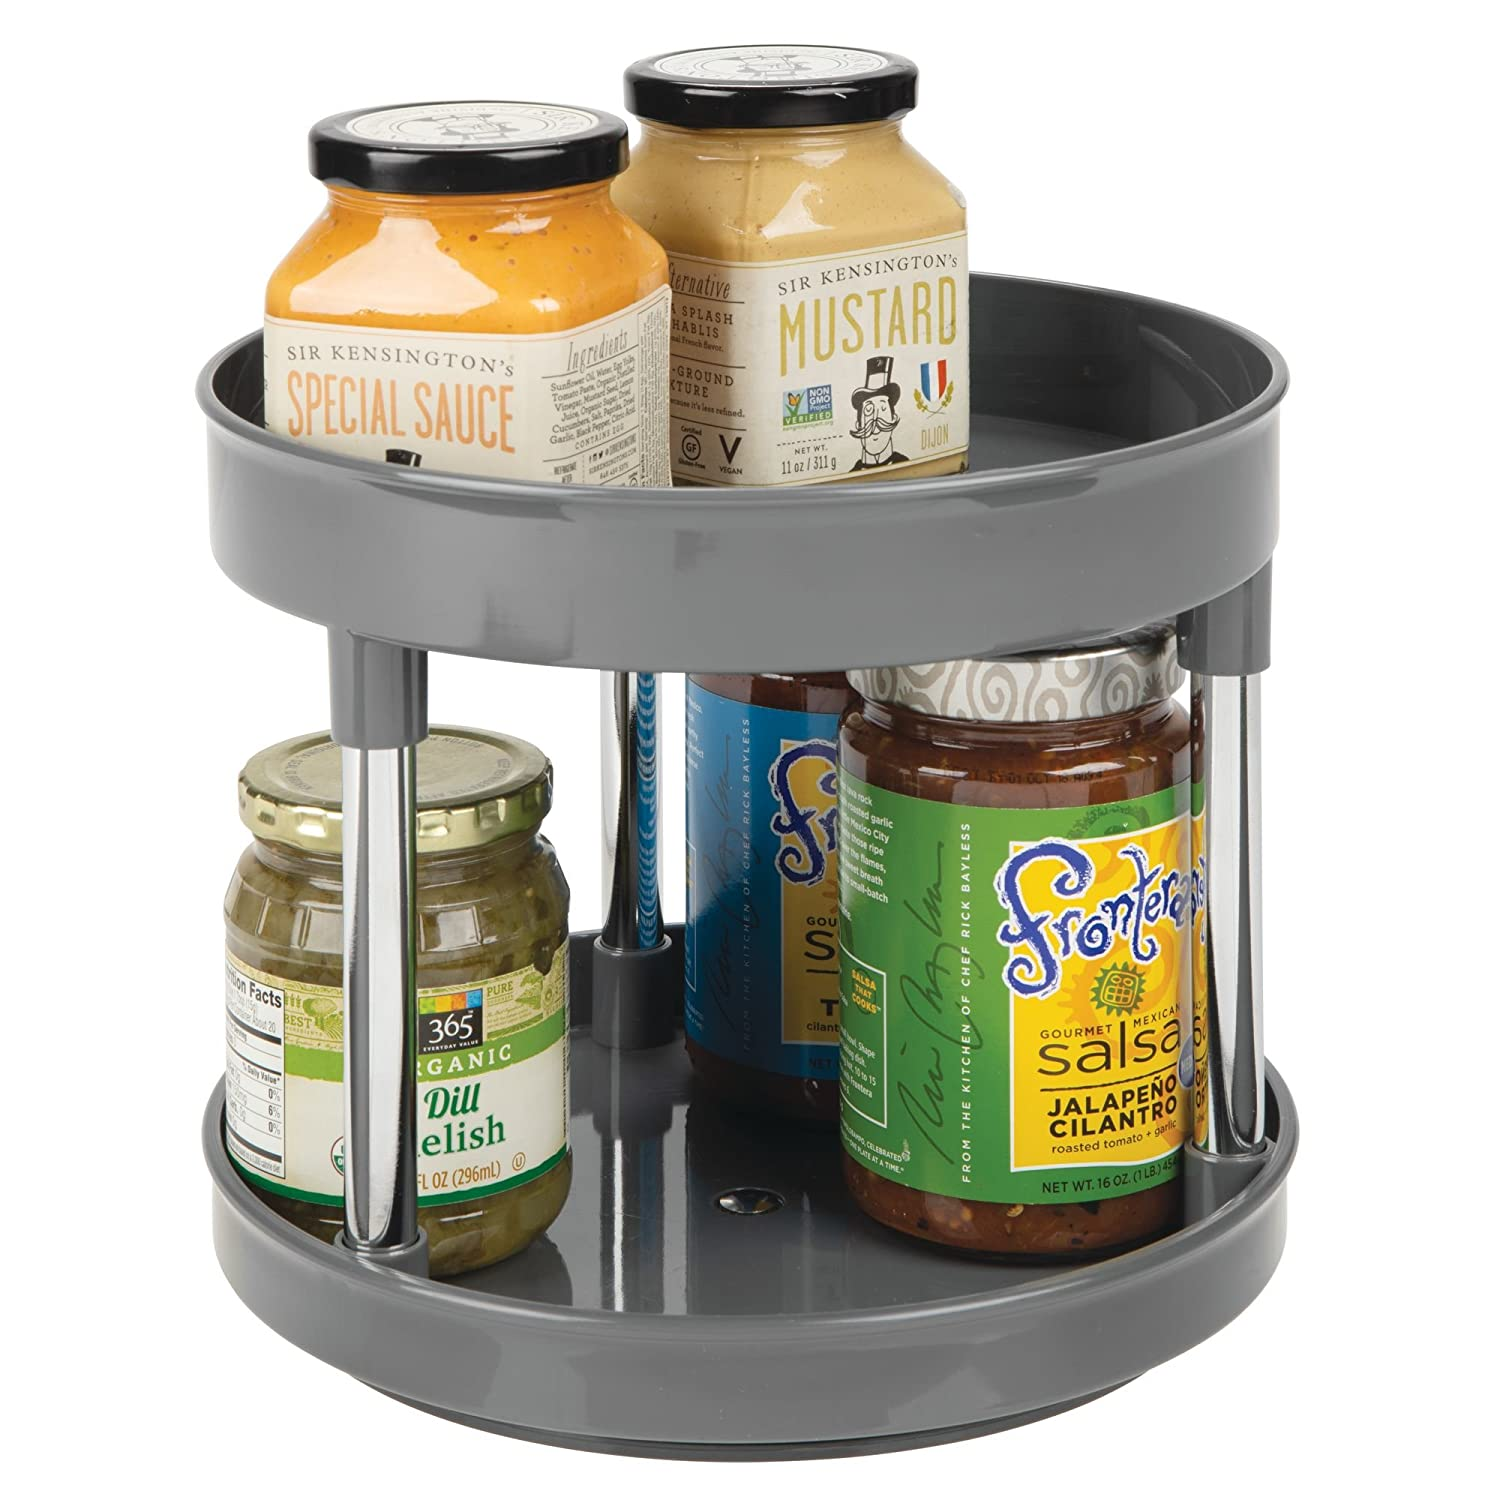 "mDesign 2 Tier Lazy Susan Turntable Food Storage Container for Cabinets, Pantry, Fridge, Countertops - Spinning Organizer for Spices, Condiments - 9"" Round - Charcoal Gray/Chrome"